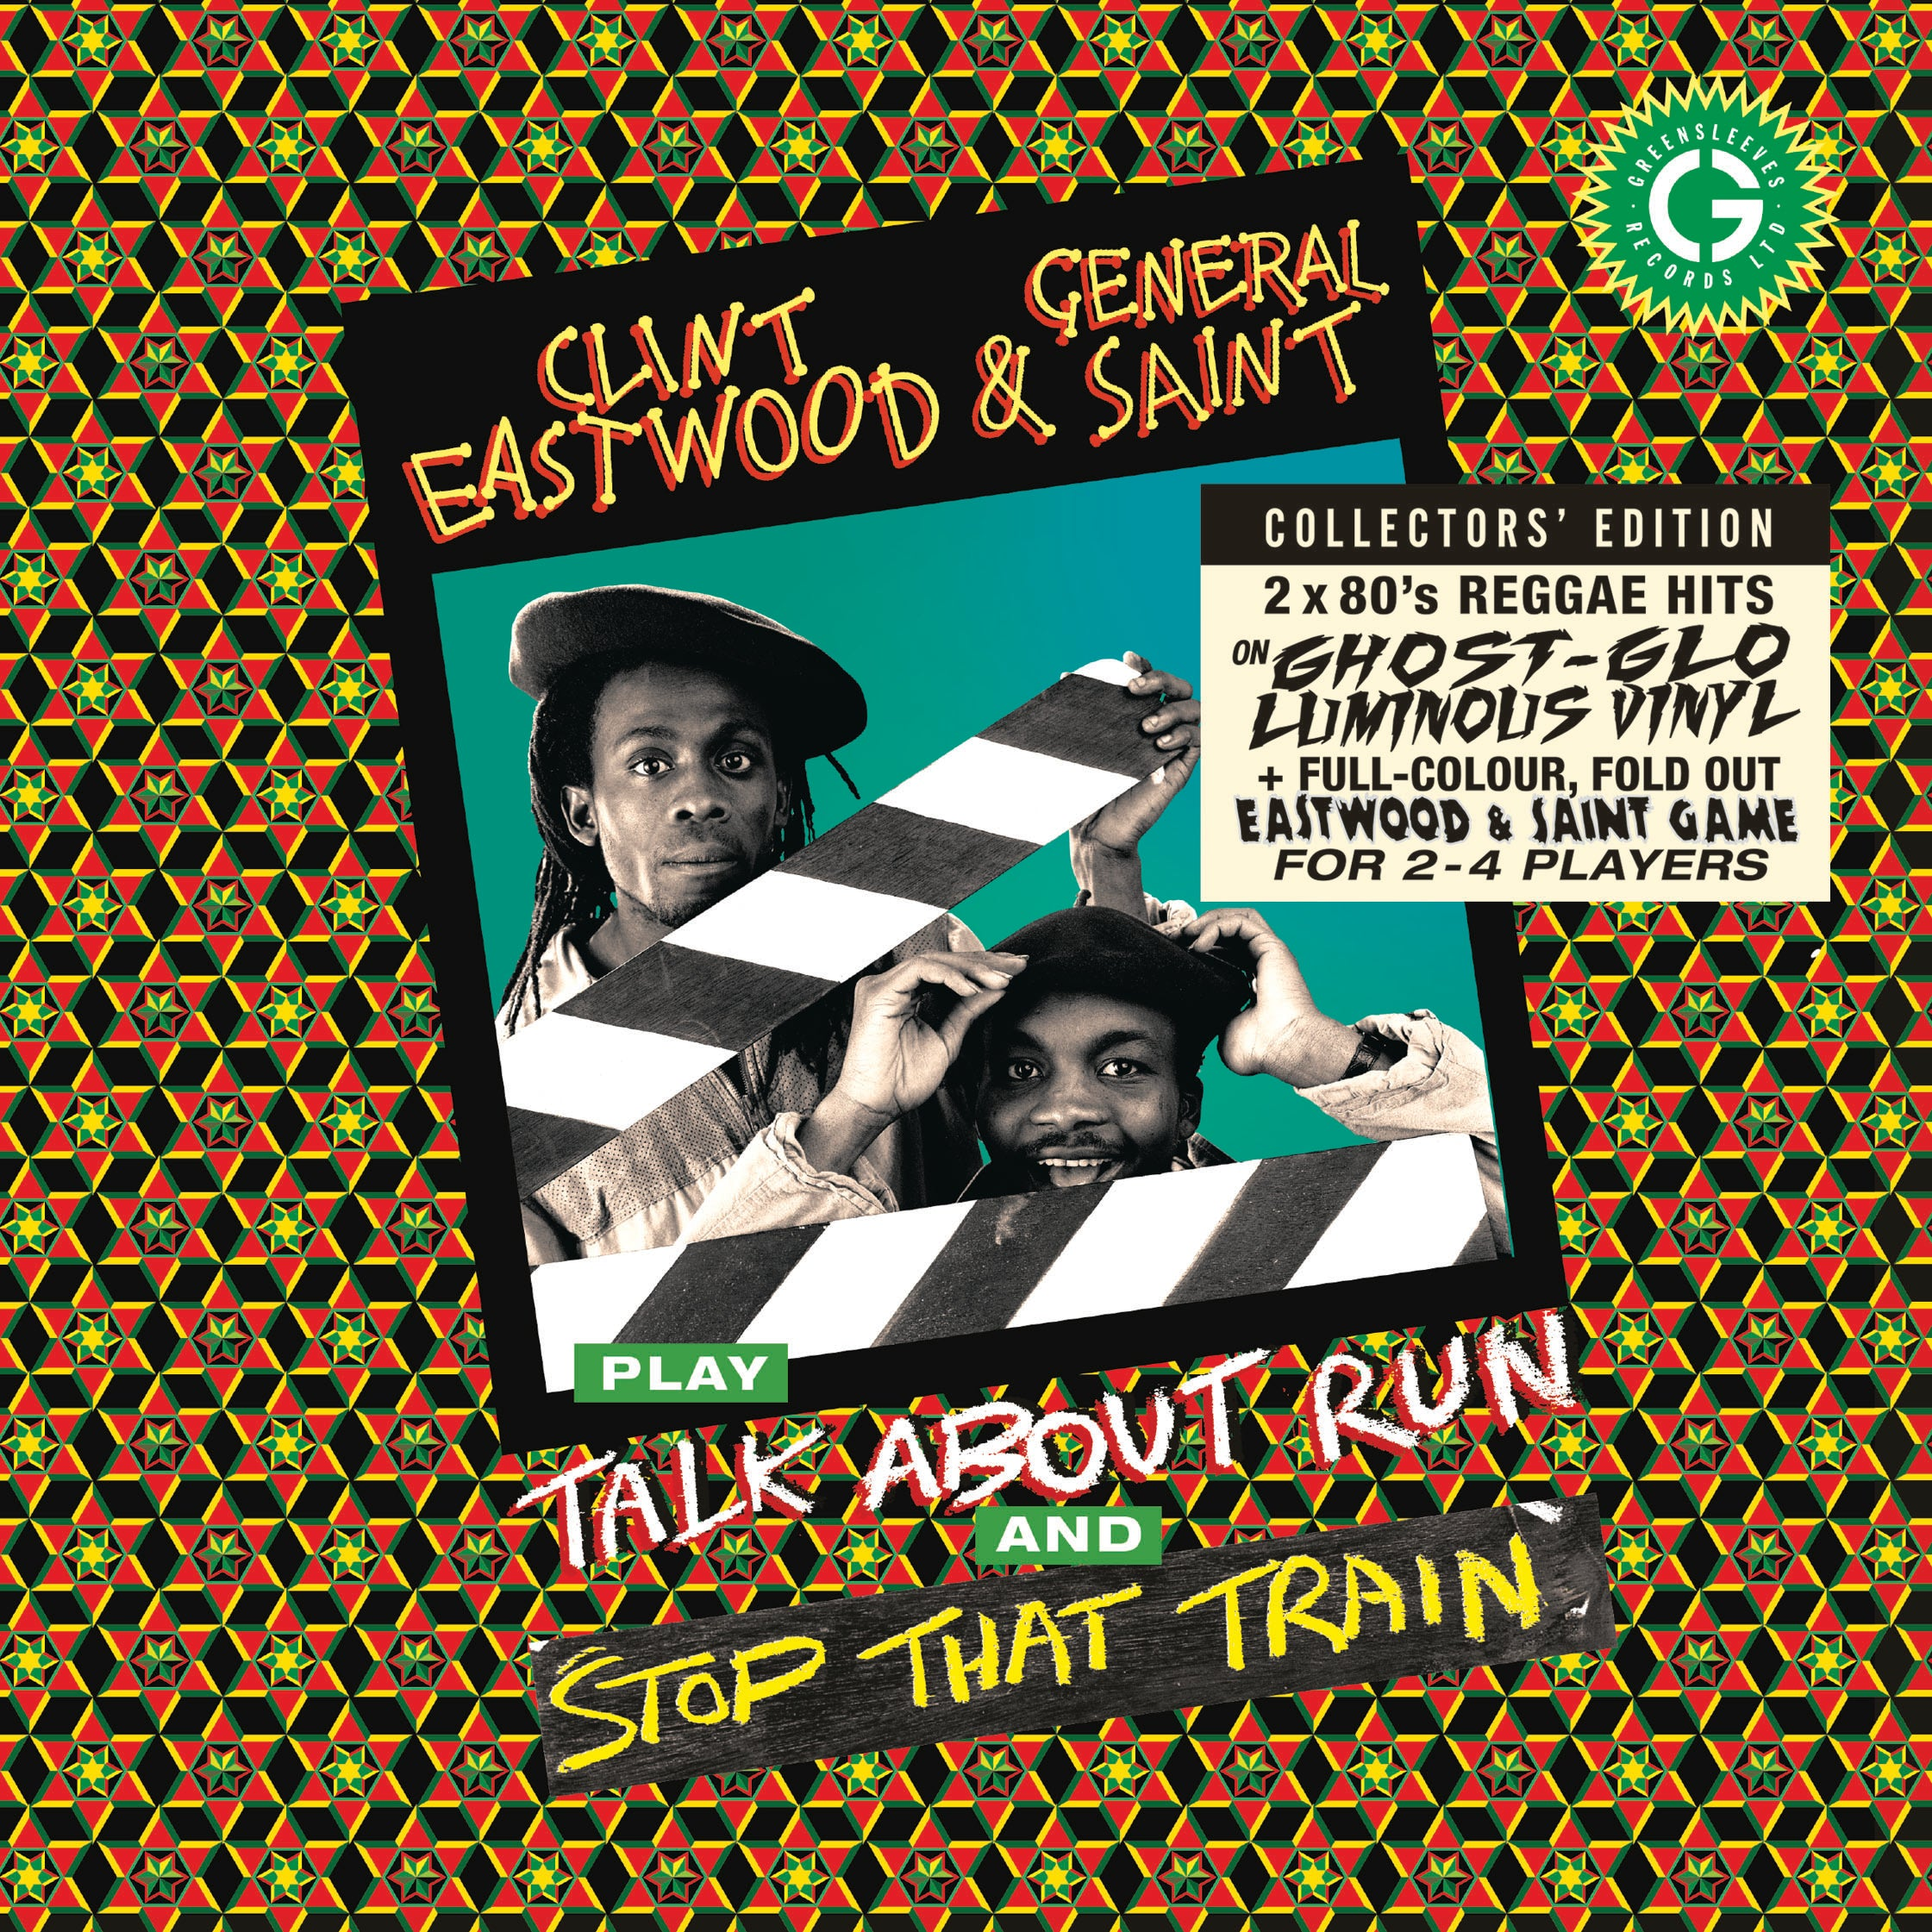 "Clint Eastwood & General Saint - Stop That Train / Stop That Train b/w Talk About Run (RSD 2020 Drop Two) 7"" Glow in the dark Vinyl Record"